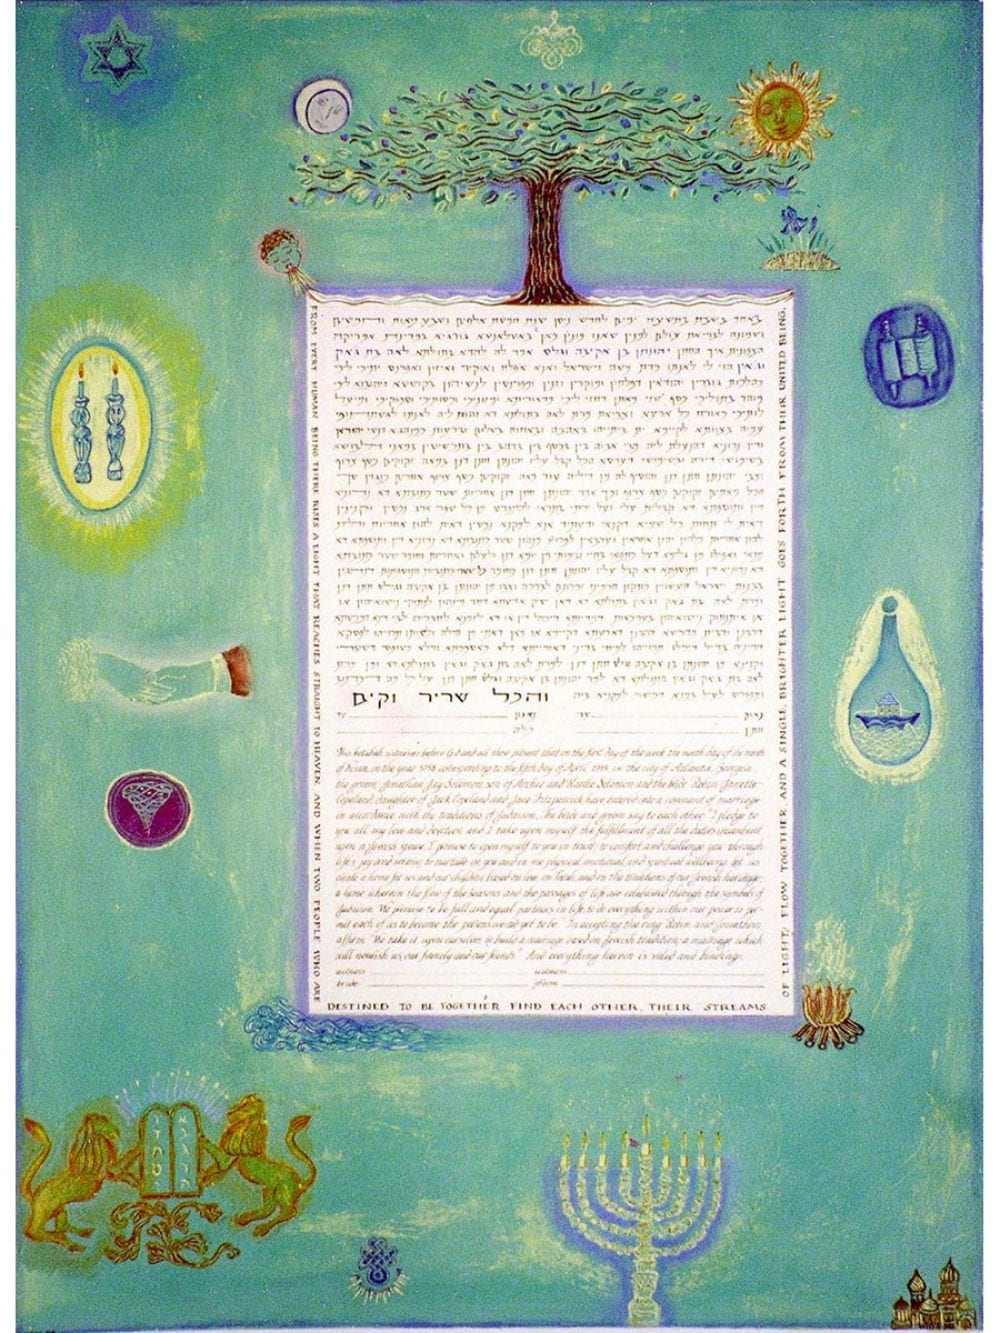 chagall-moscow-ketubah